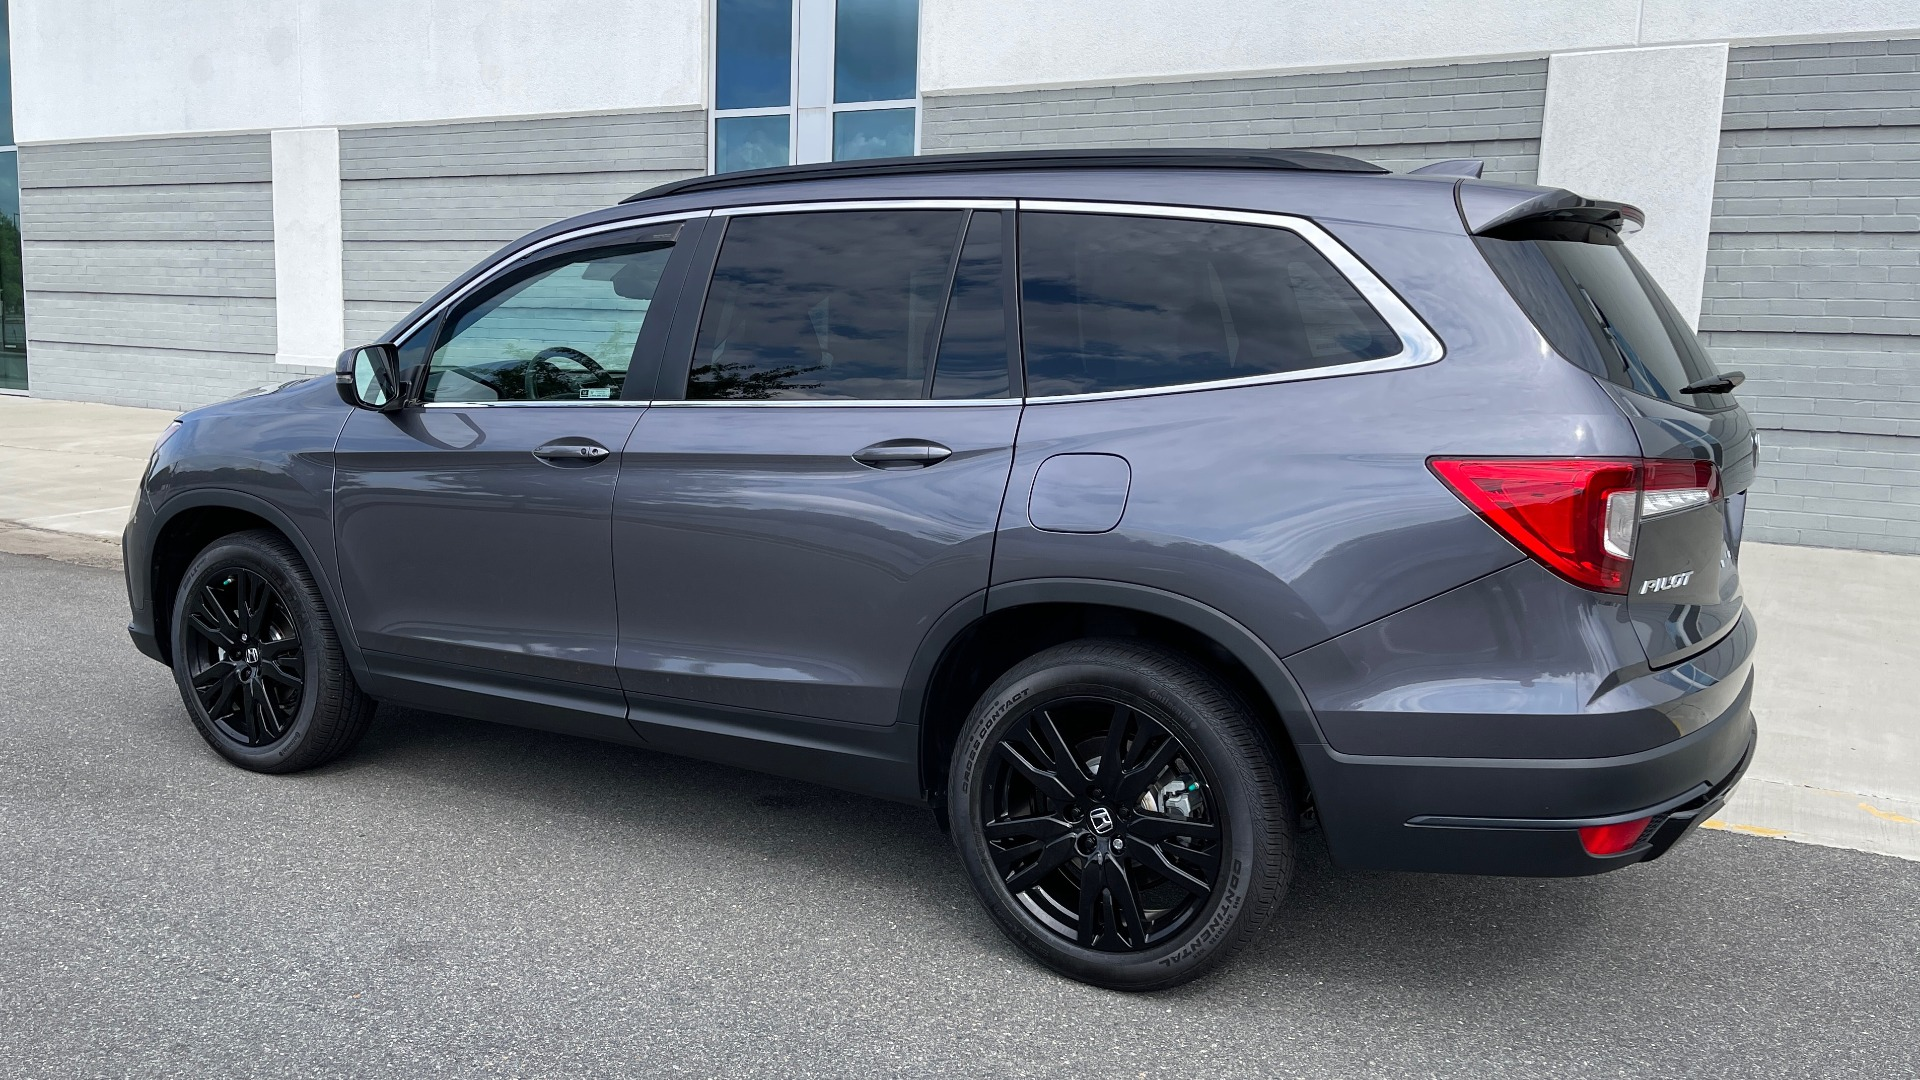 Used 2021 Honda PILOT SE / 3.5L V6 / 9-SPD AUTO / SUNROOF / 3-ROW / REARVIEW for sale $38,795 at Formula Imports in Charlotte NC 28227 3